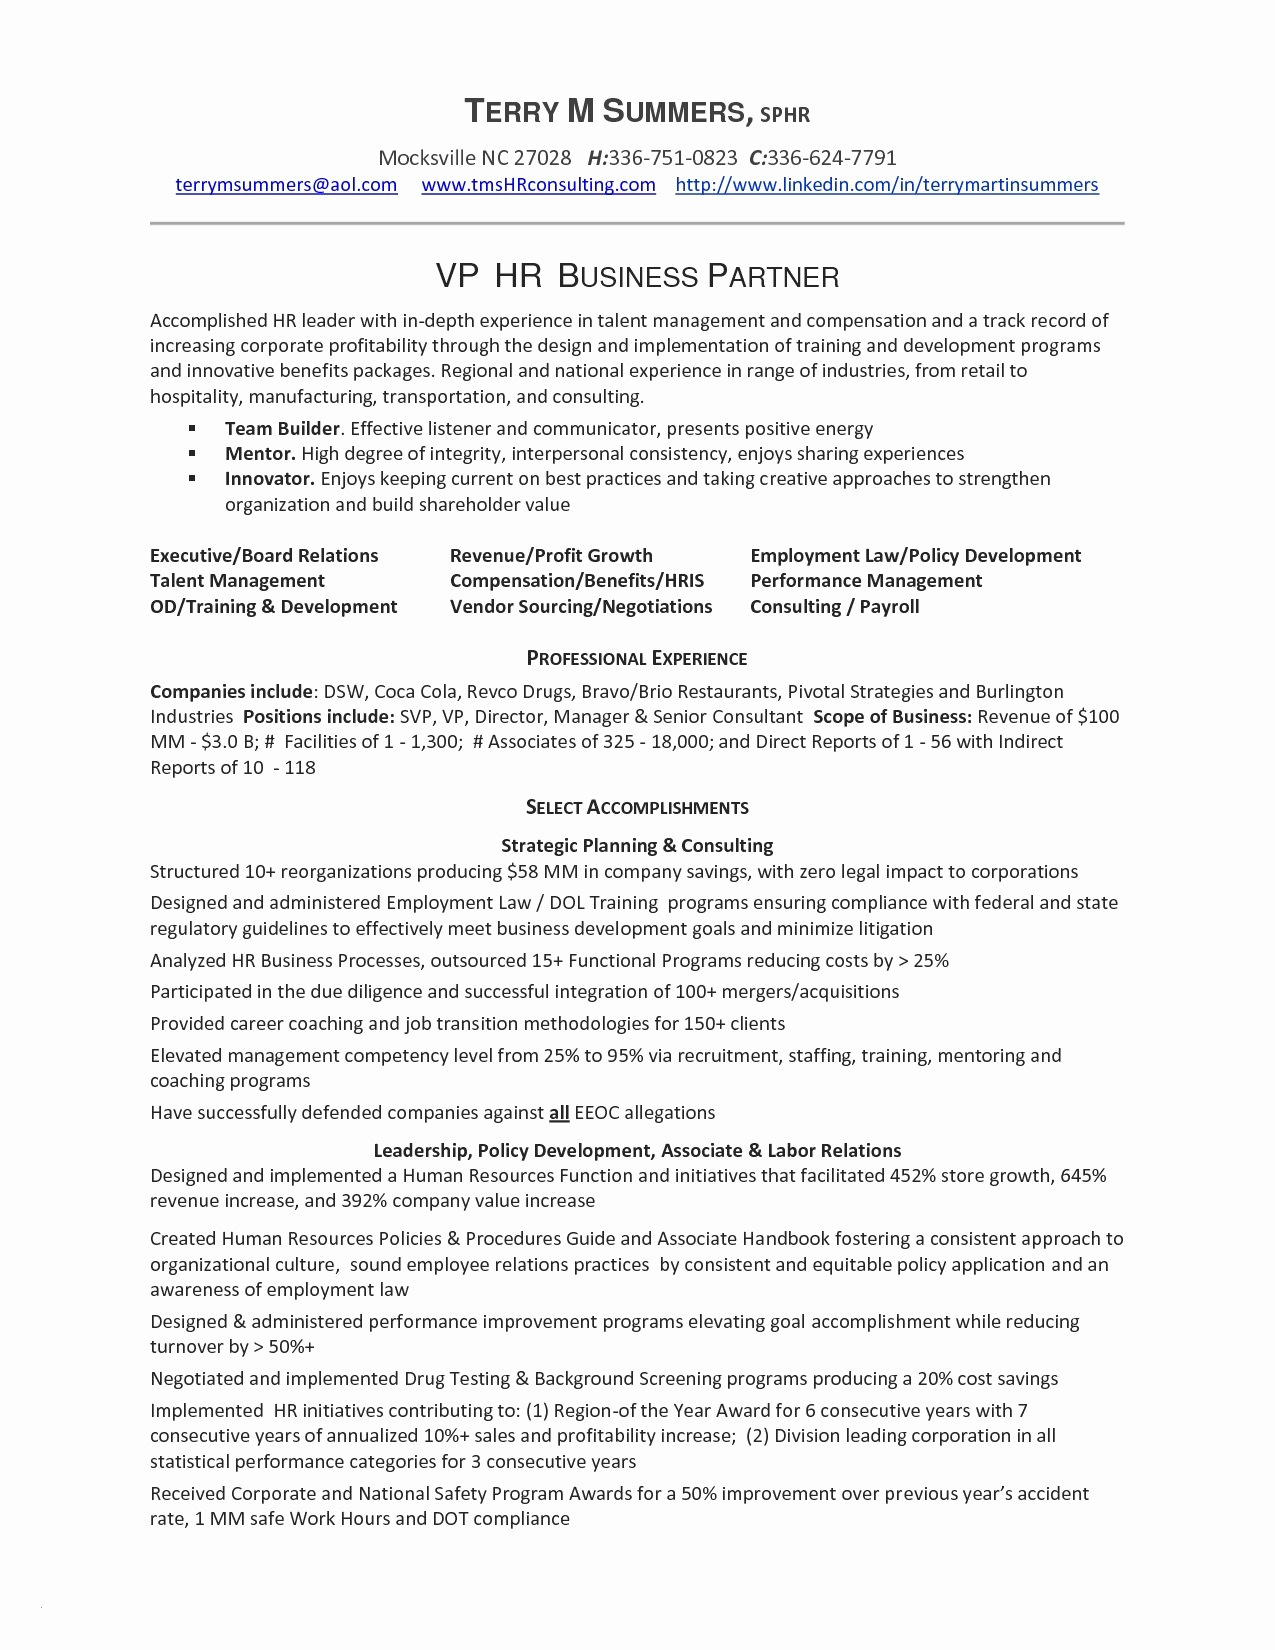 resume template for business analyst Collection-Simple Resume format Doc New Resume Template Doc Lovely Business Analyst Resume Sample Doc 14-t